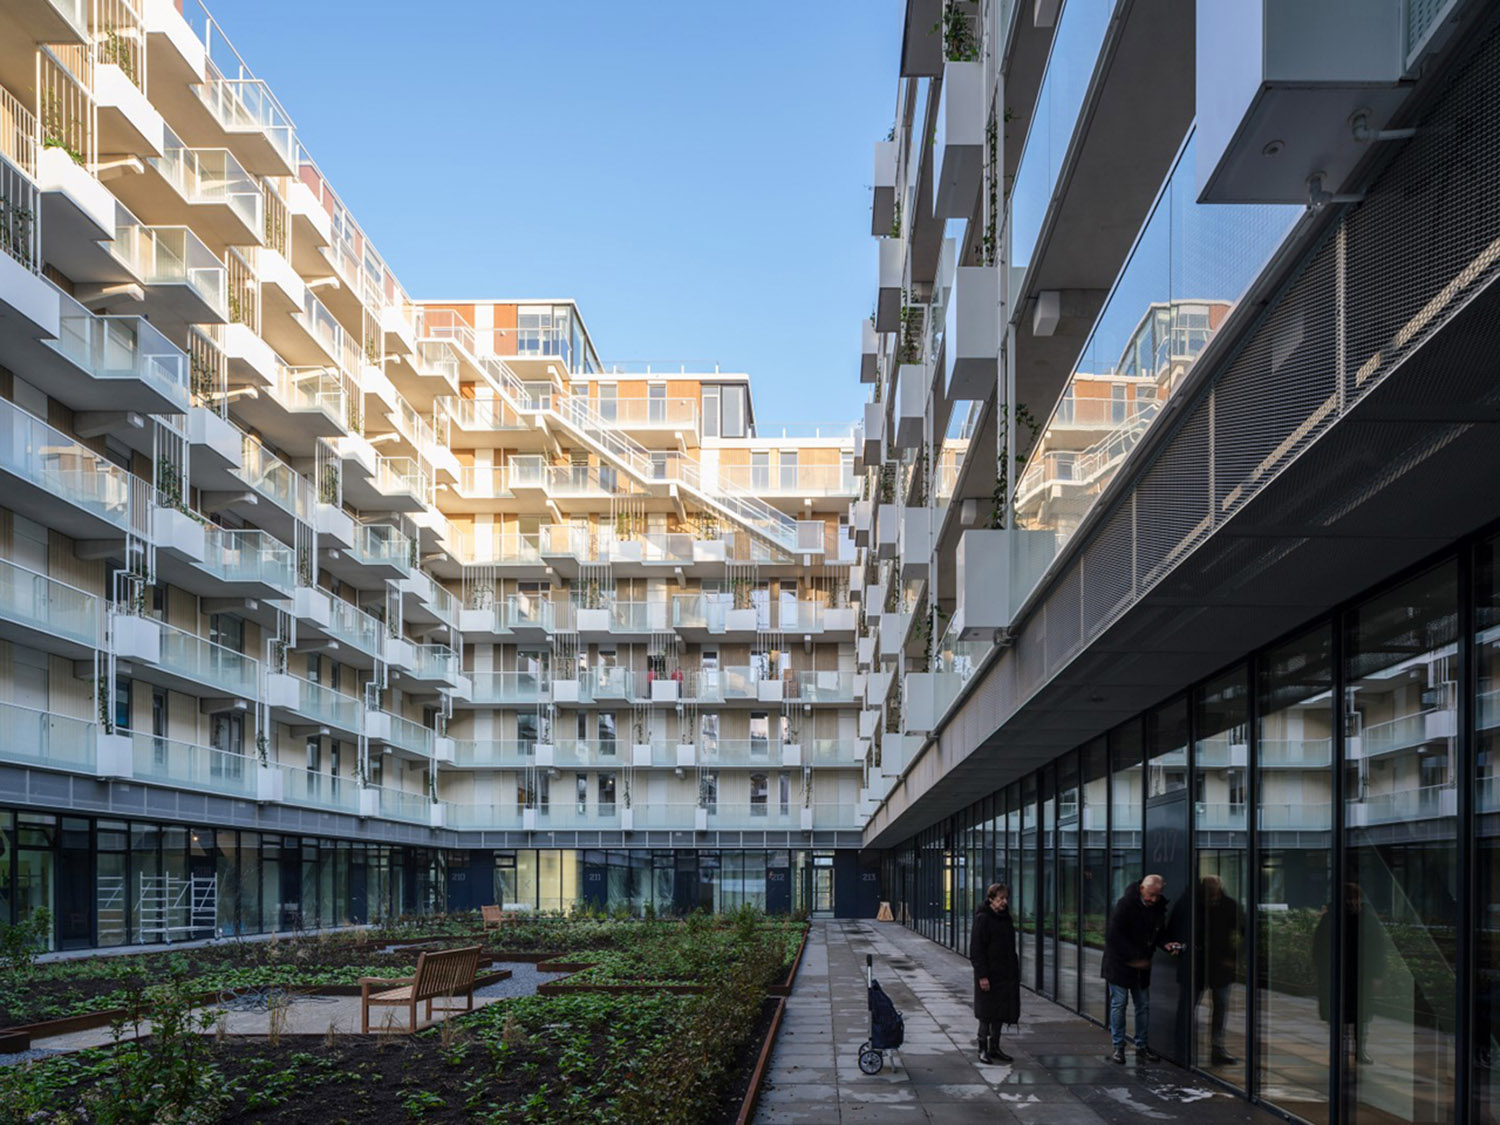 Mei architects and planners - Fenix I - Courtyard Ossip